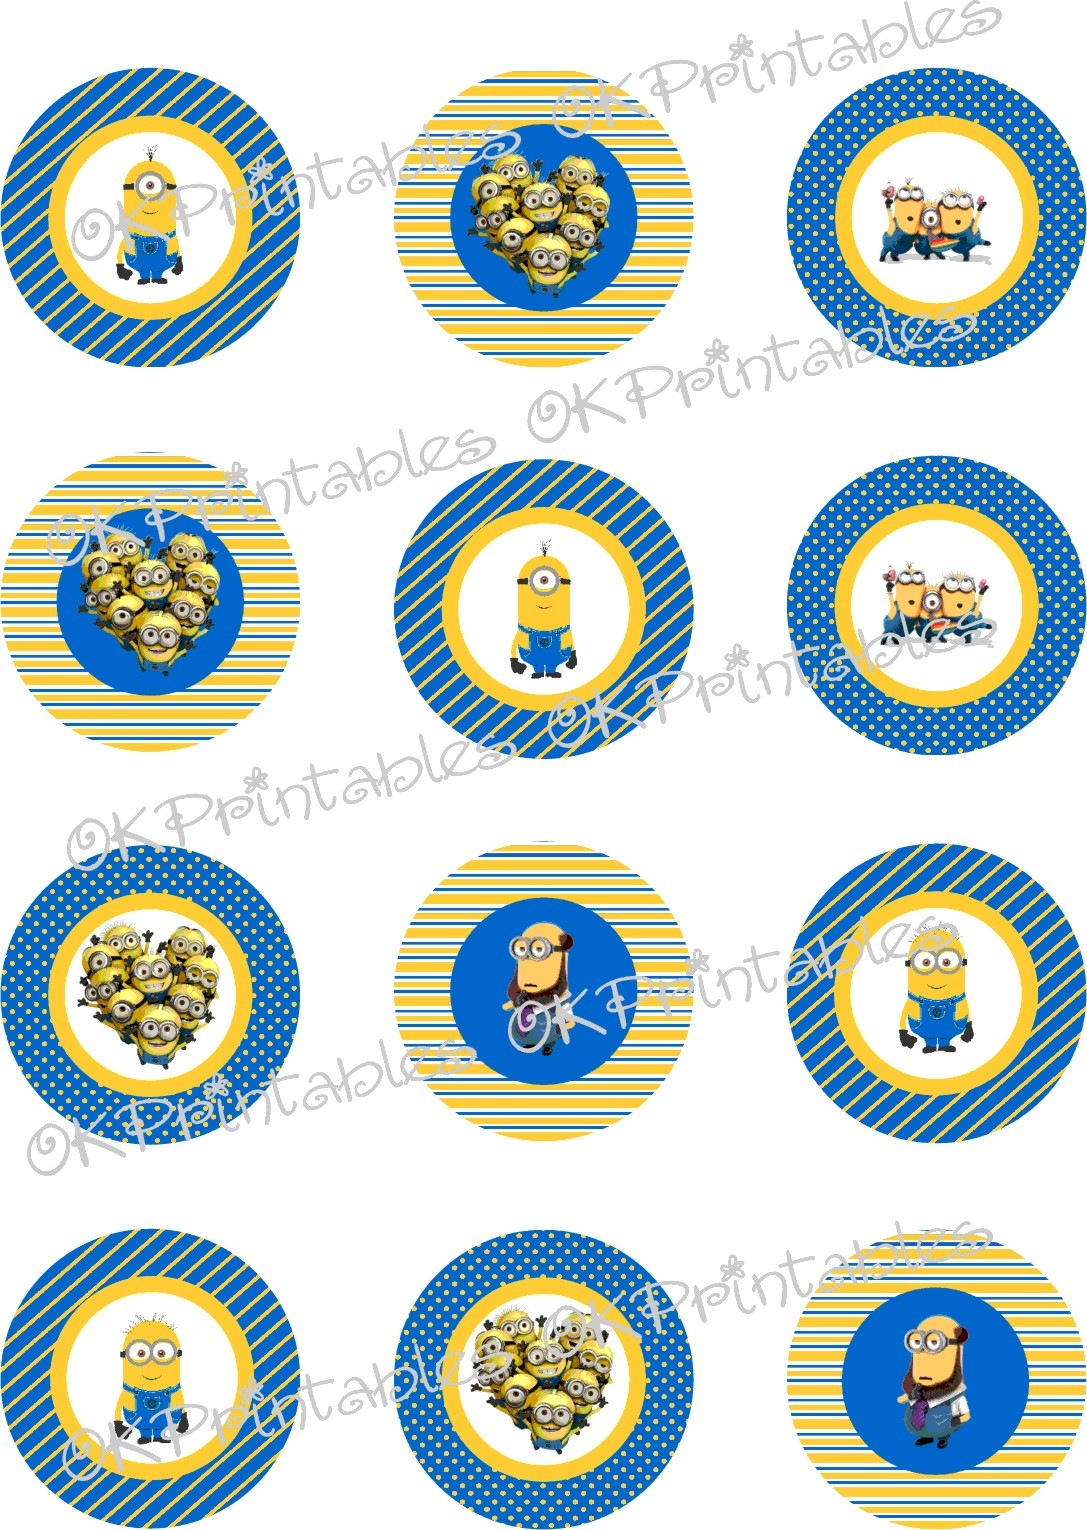 Minions (Despicable Me) Cupcake Toppers, Printable, Minion ...